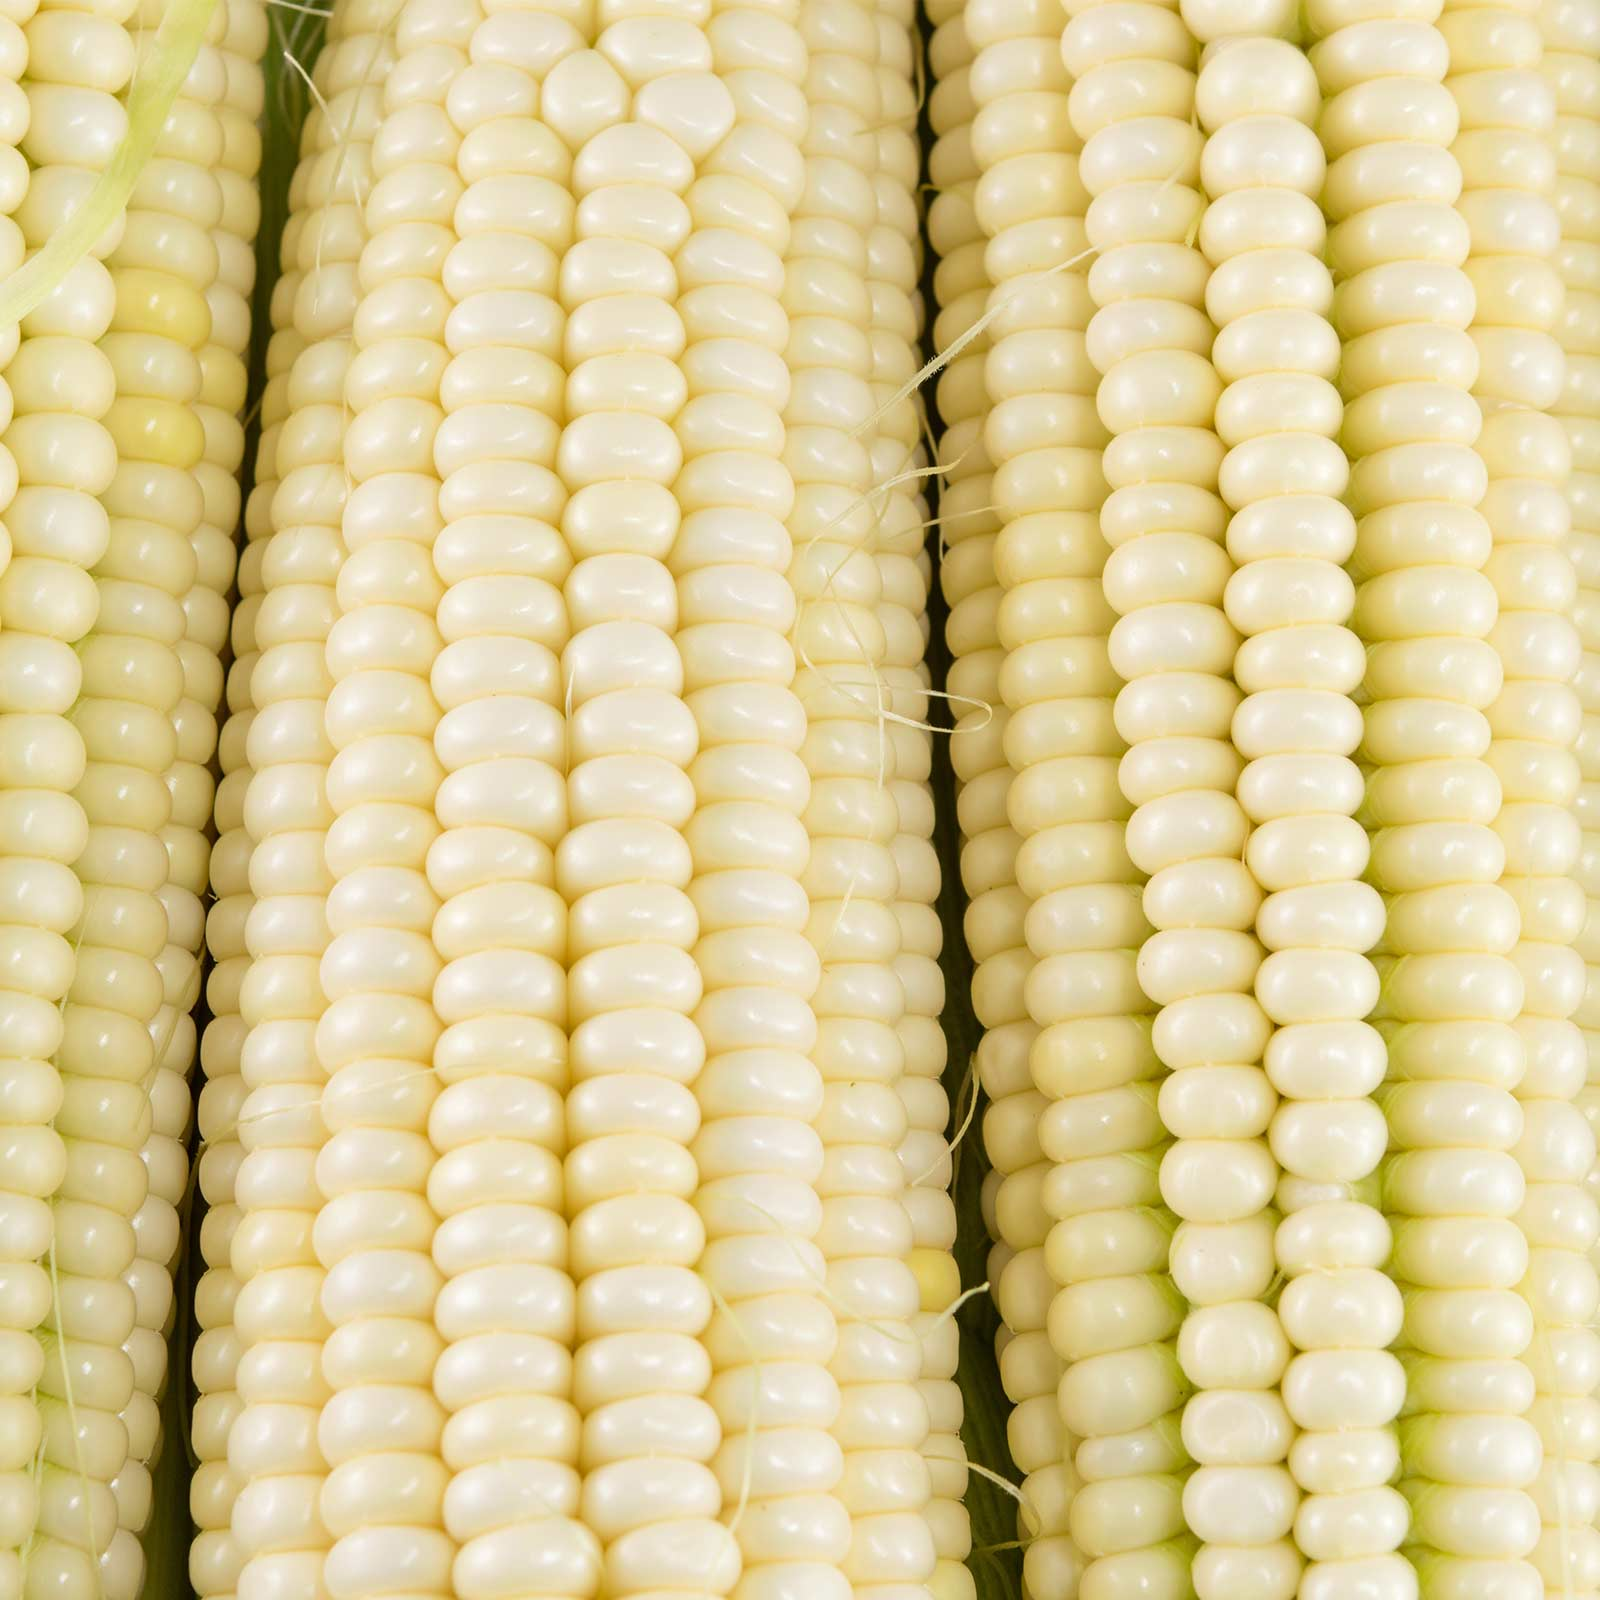 Luxurious Silver Queen Hybrid Corn Garden Seed Lb Wide Range Most Corn One Its Eatingquality Few Varieties Consumersask America Because houzz 01 Silver Queen Corn